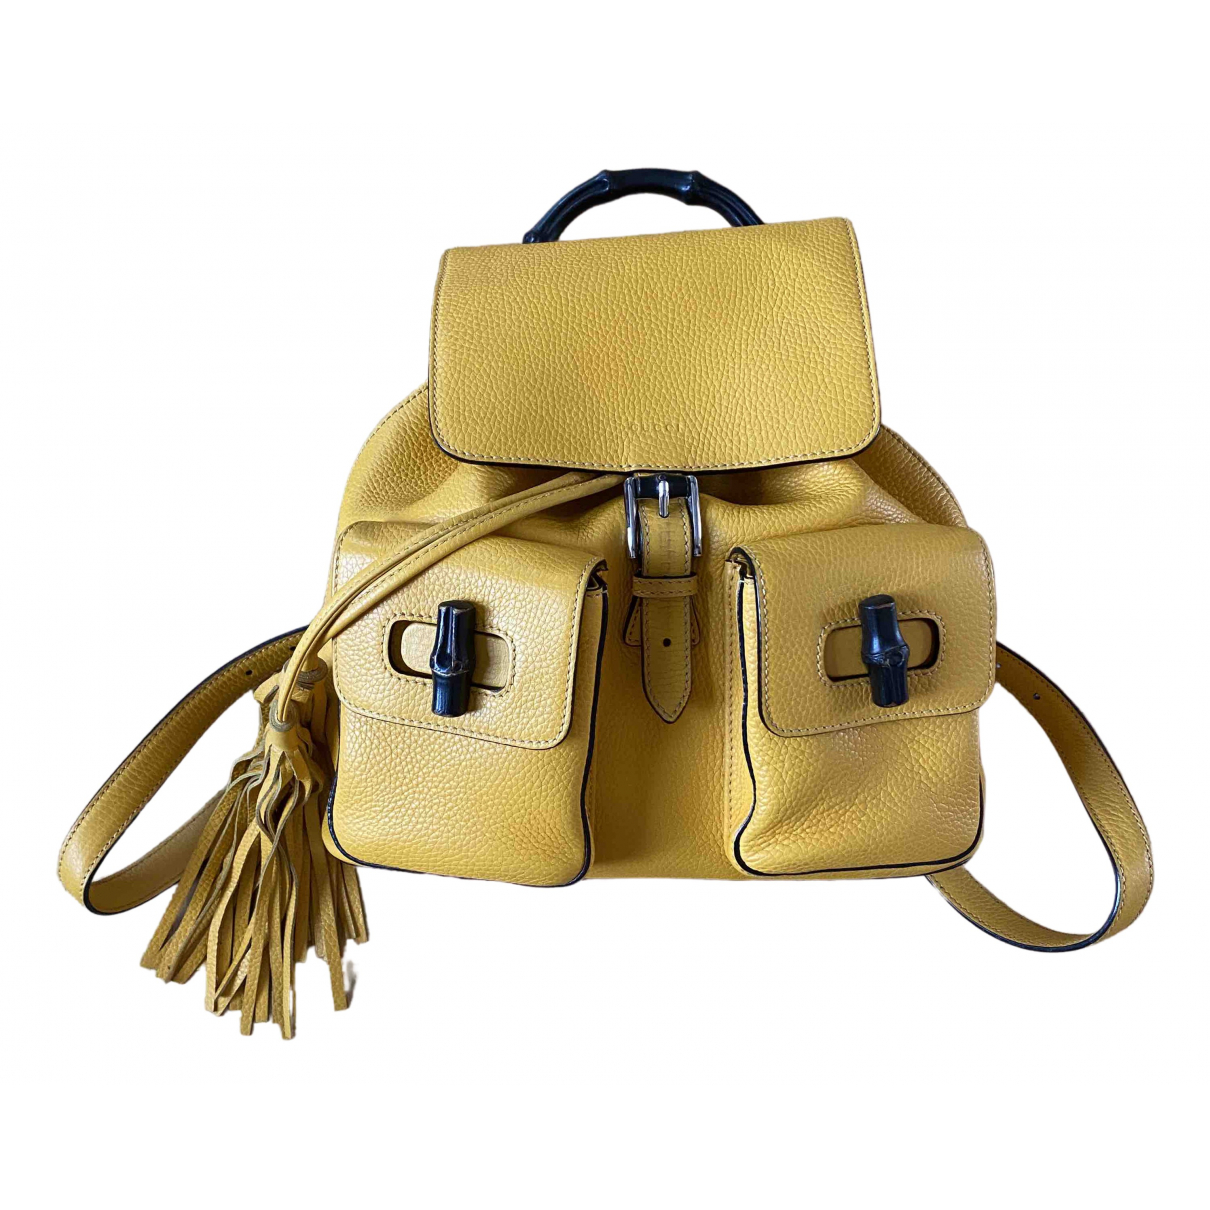 Gucci Bamboo Yellow Leather backpack for Women \N